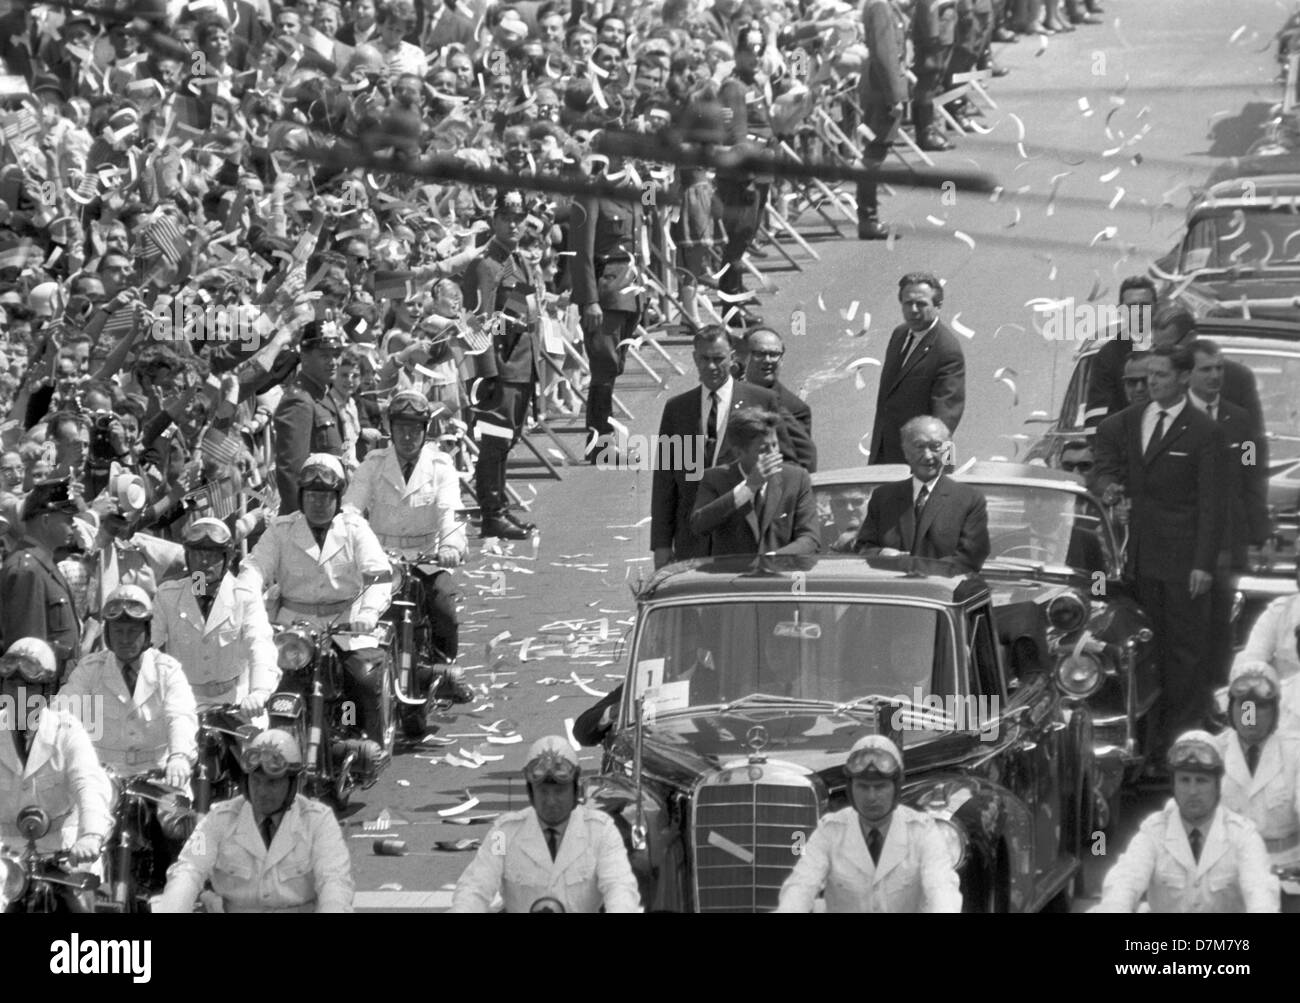 Adenauer Rose Us President John F Kennedy In An Open Limousine With German